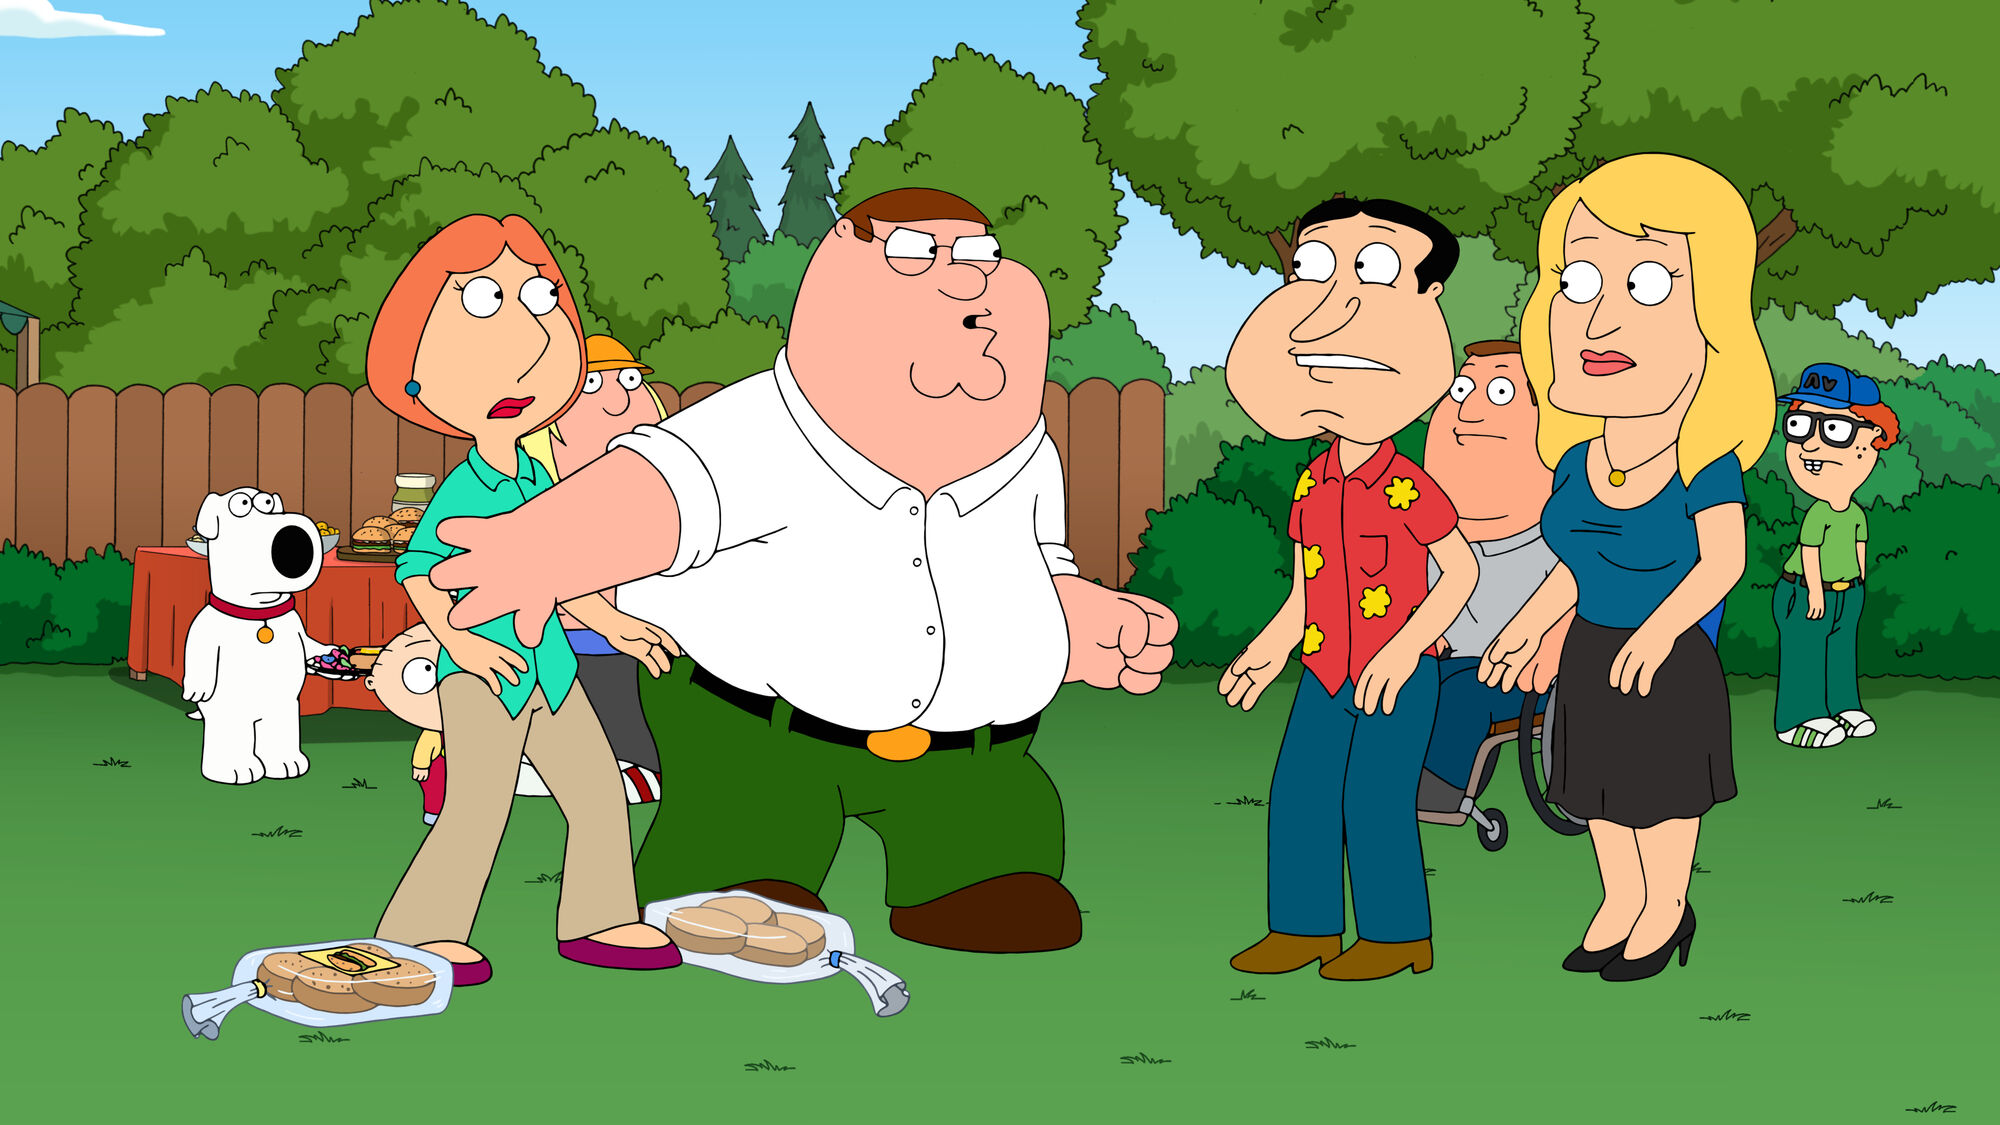 Lois Griffin Teaches Meg And Steve Smith How To Have Sex